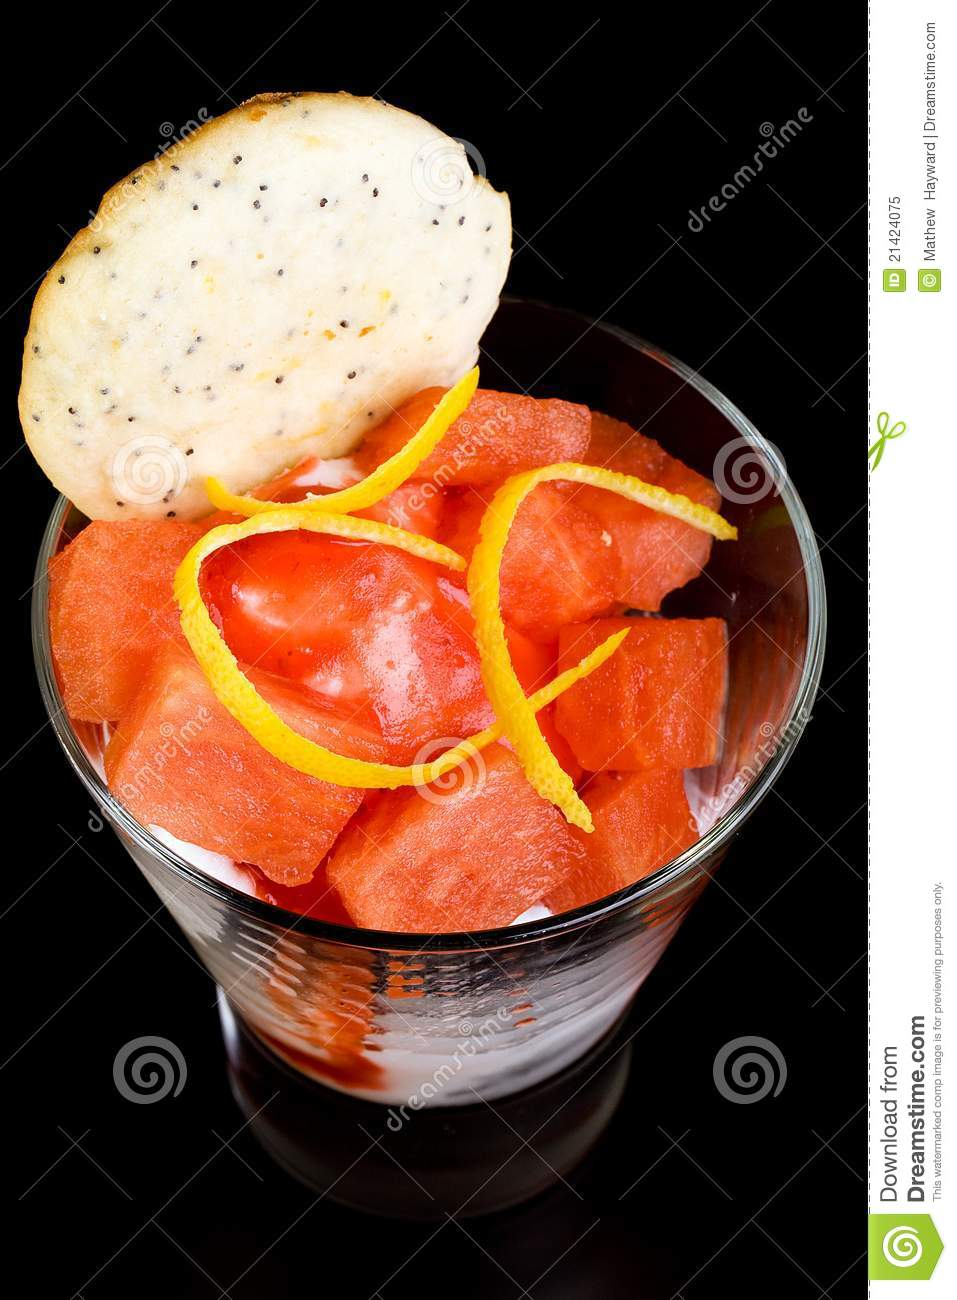 Fruit Cup For Dessert Royalty Free Stock Photo   Image  21424075